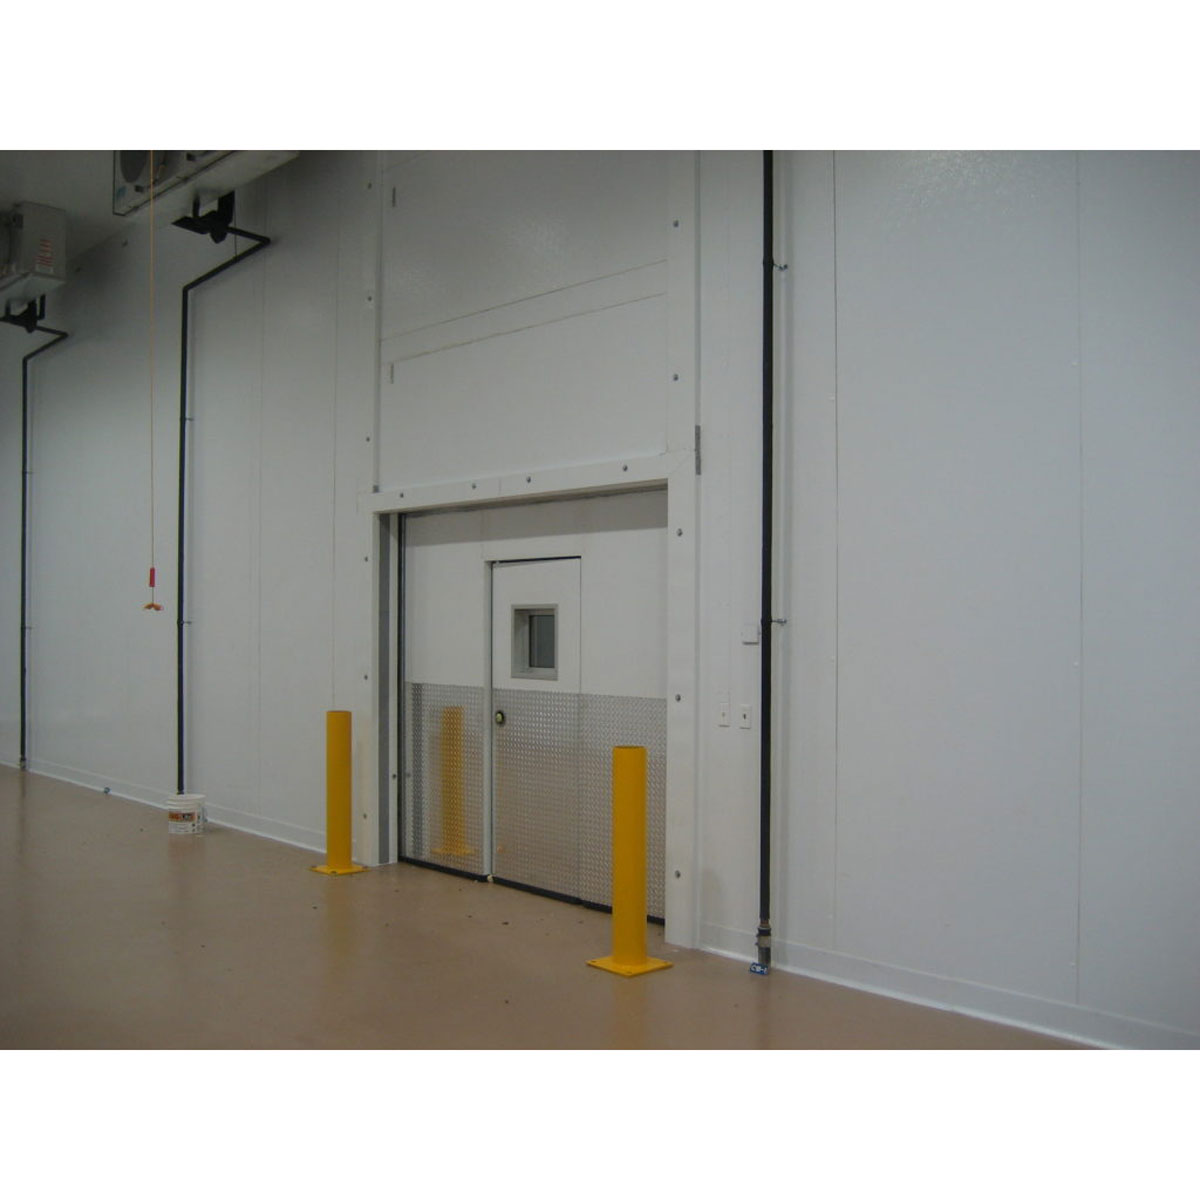 New Orleans Cold Storage Warehouse Door Commercial Cooling Par Engineering Inc. City of Industry